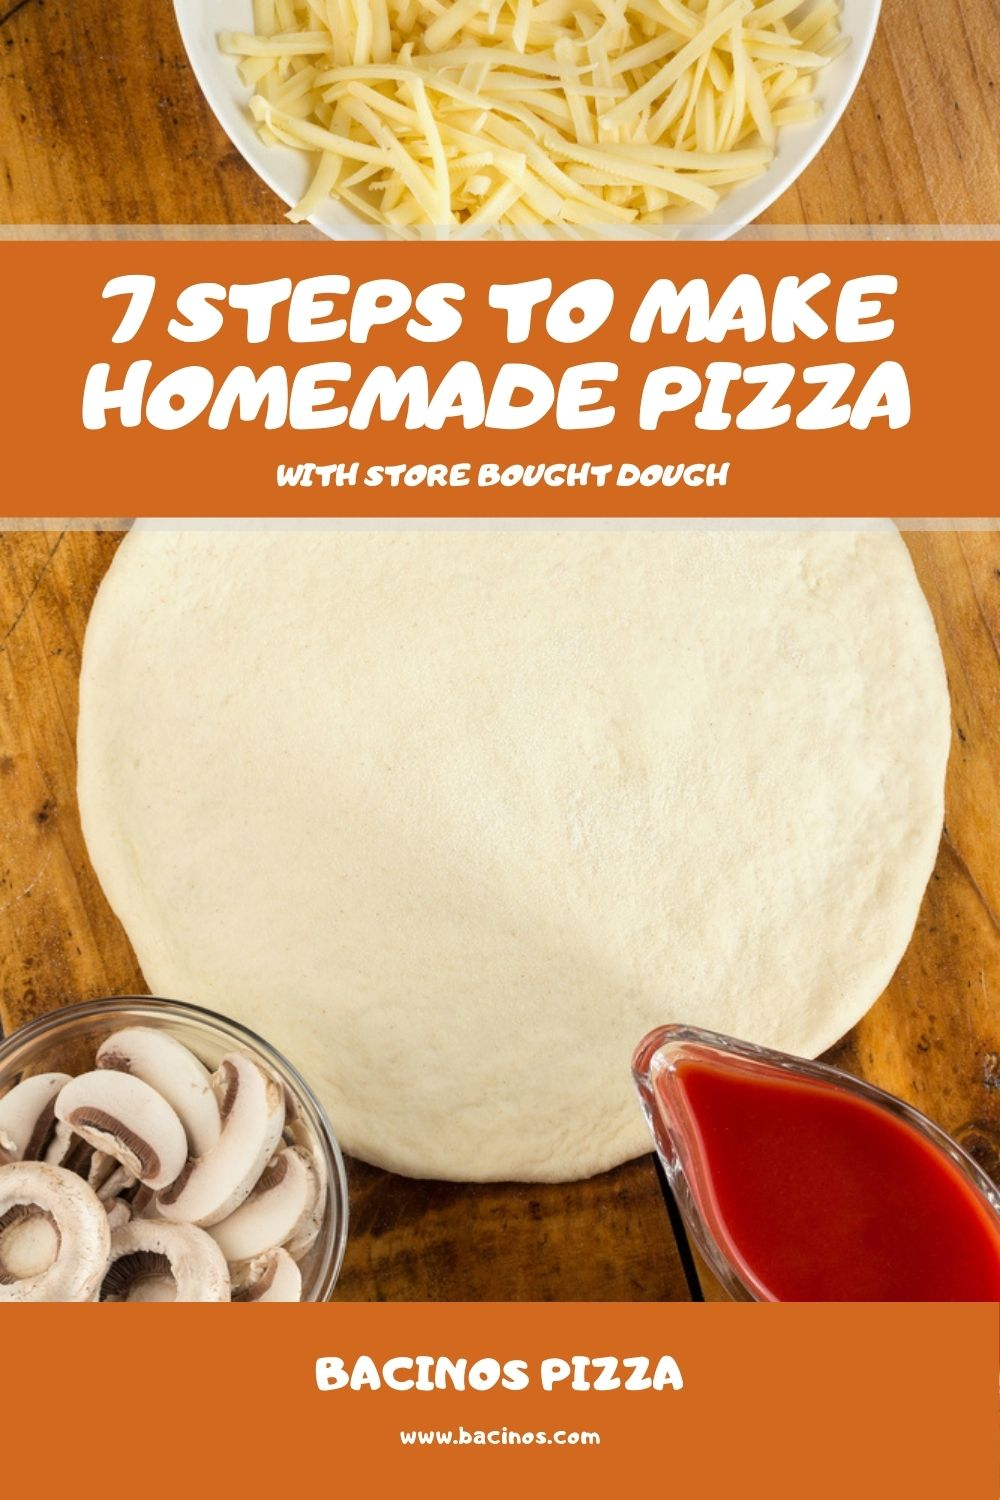 7 Steps to Make Homemade Pizza With Store Bought Dough 1